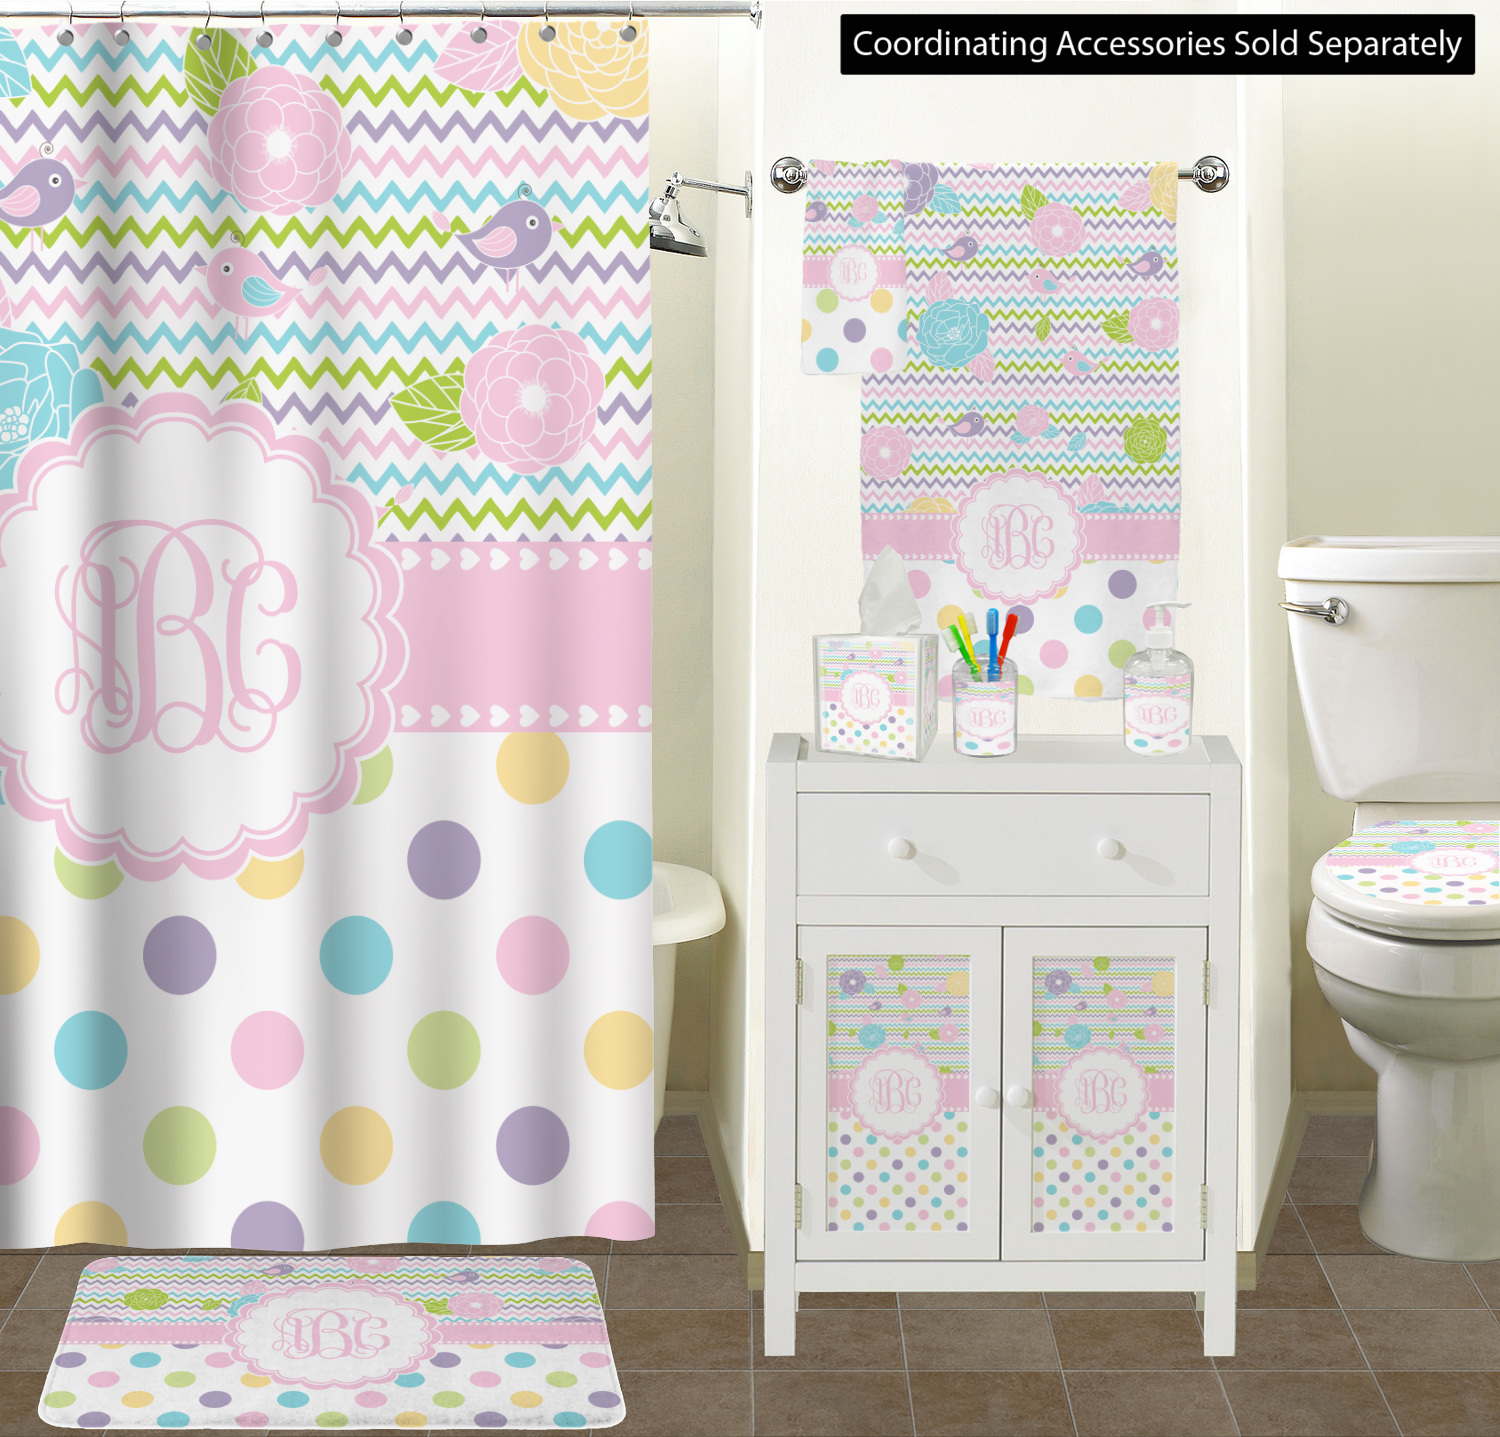 Girly girl bathroom accessories set personalized - Monogrammed bathroom accessories ...